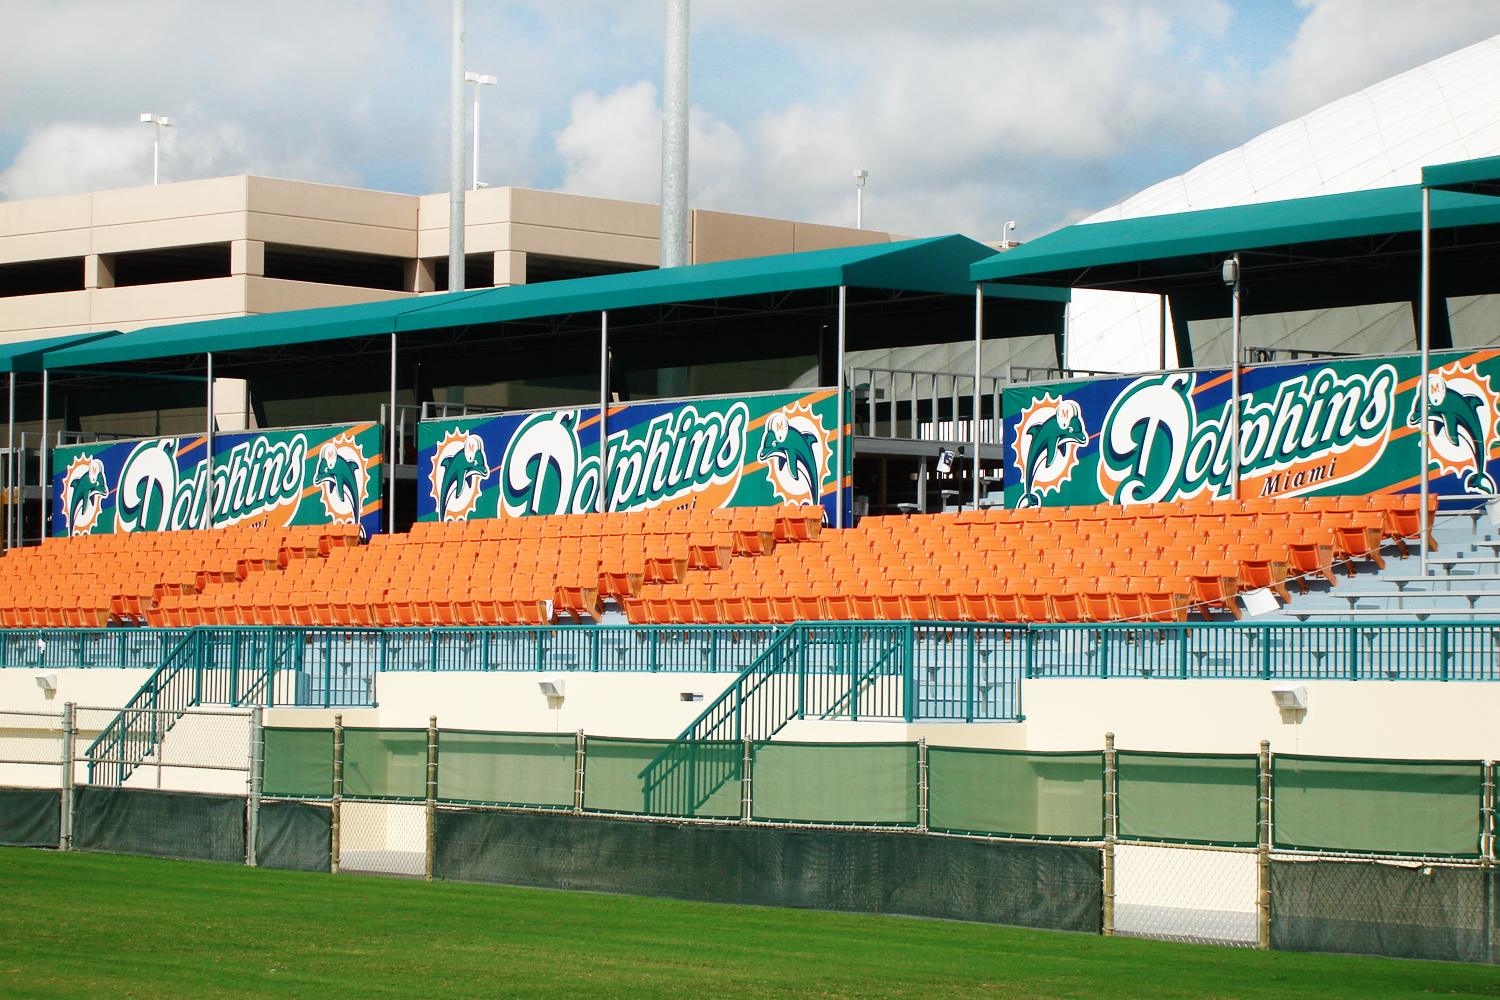 Metro Signs provides large field graphics for the Miami Dolphins training facility.